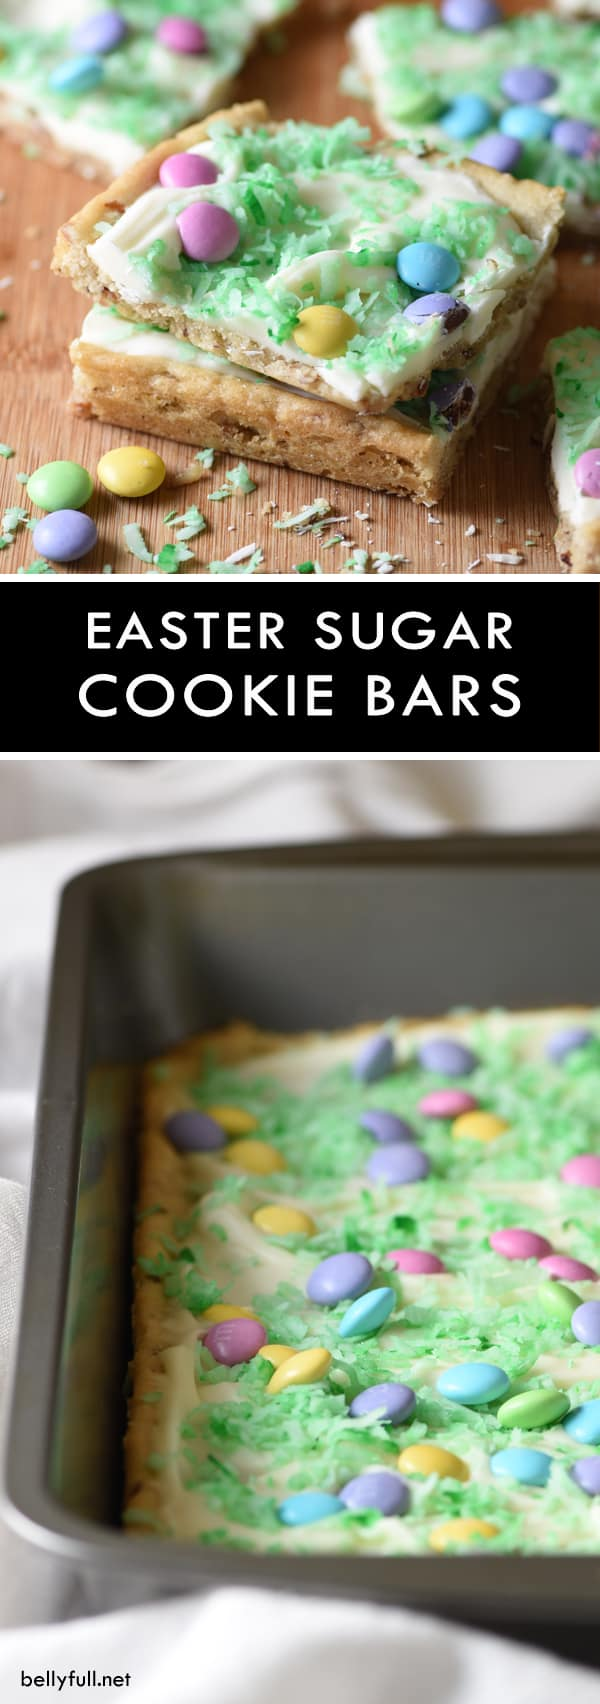 picture of sugar cookie bars for Easter